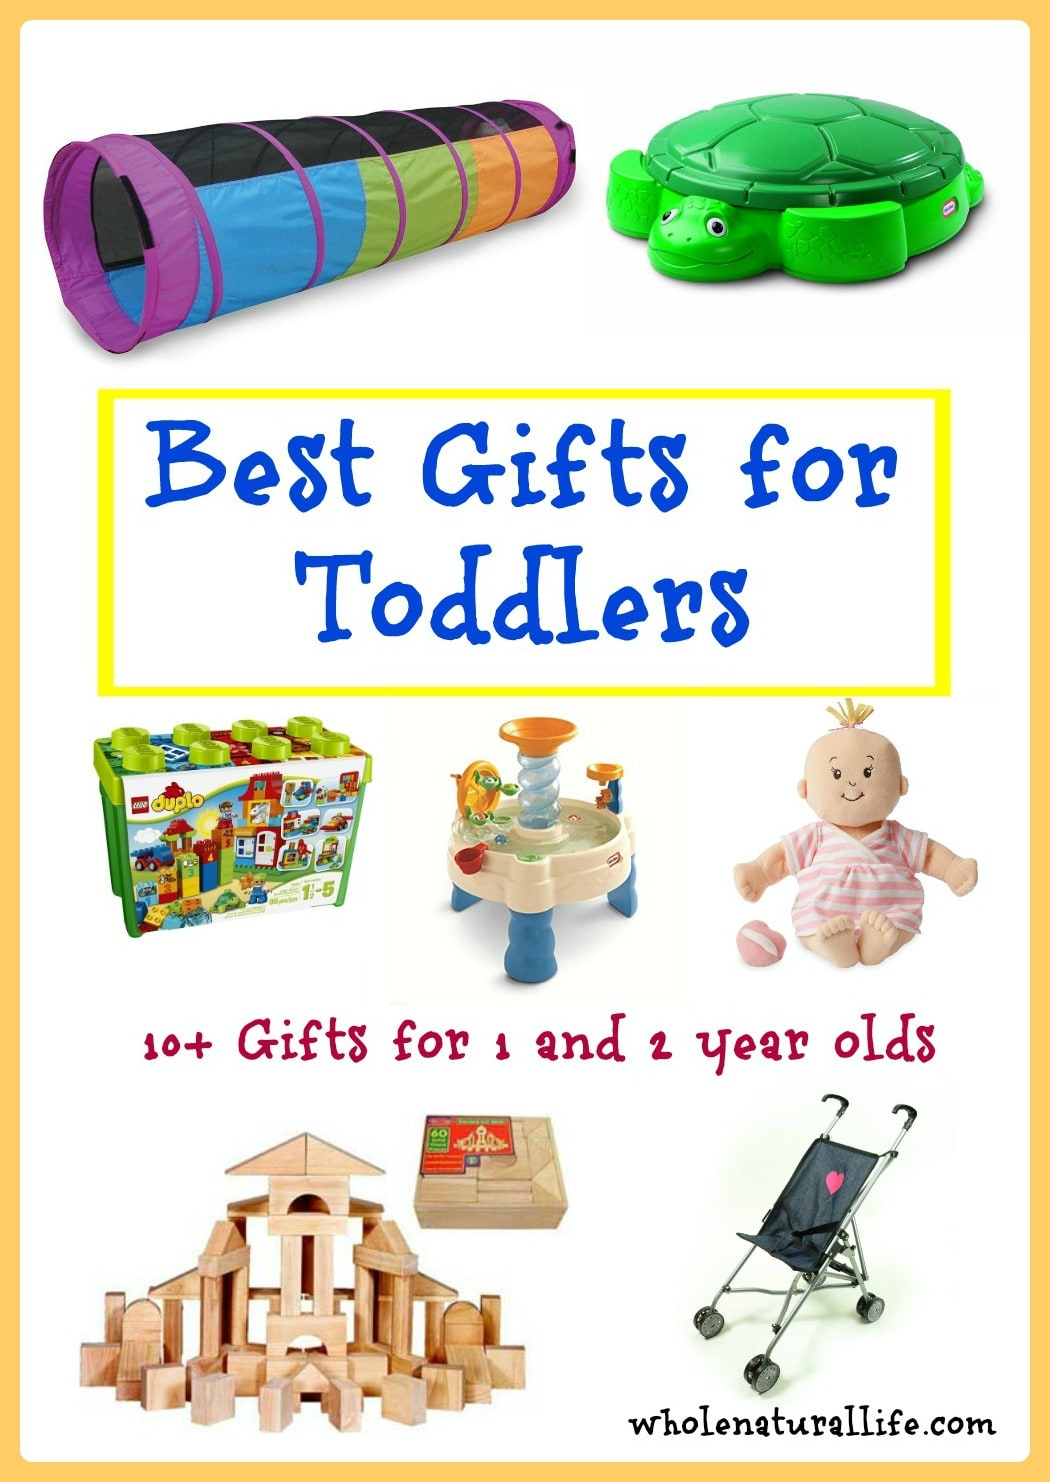 The Best Gifts for Toddlers (Ages 1 and 2) - Whole Natural Life